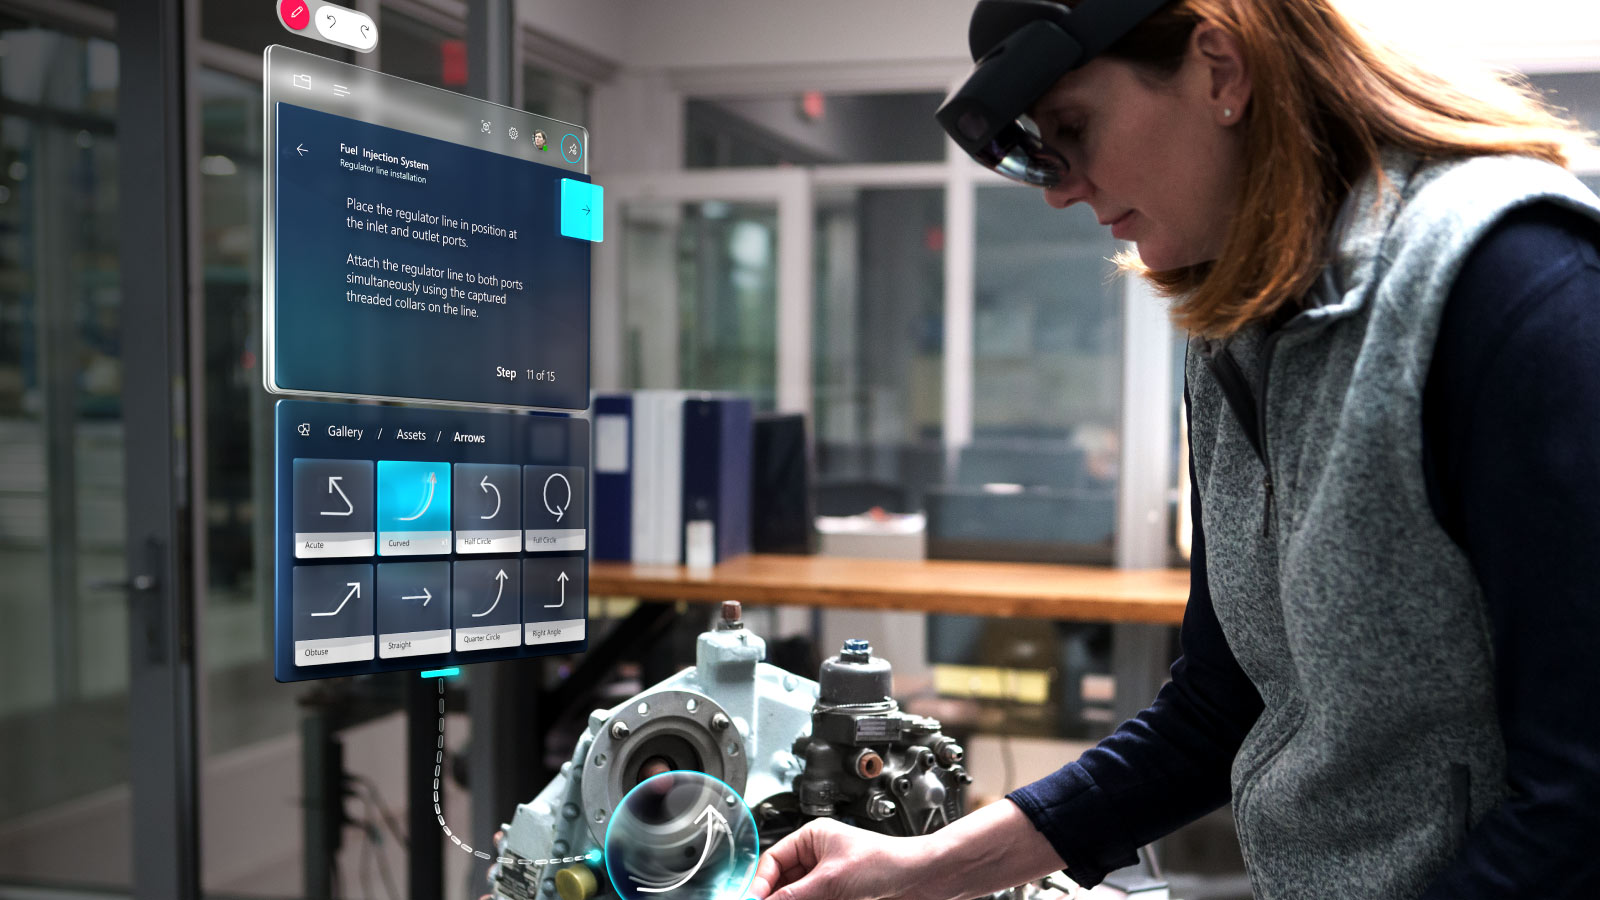 Dynamics 365 Artificial Intelligence and Mixed Reality